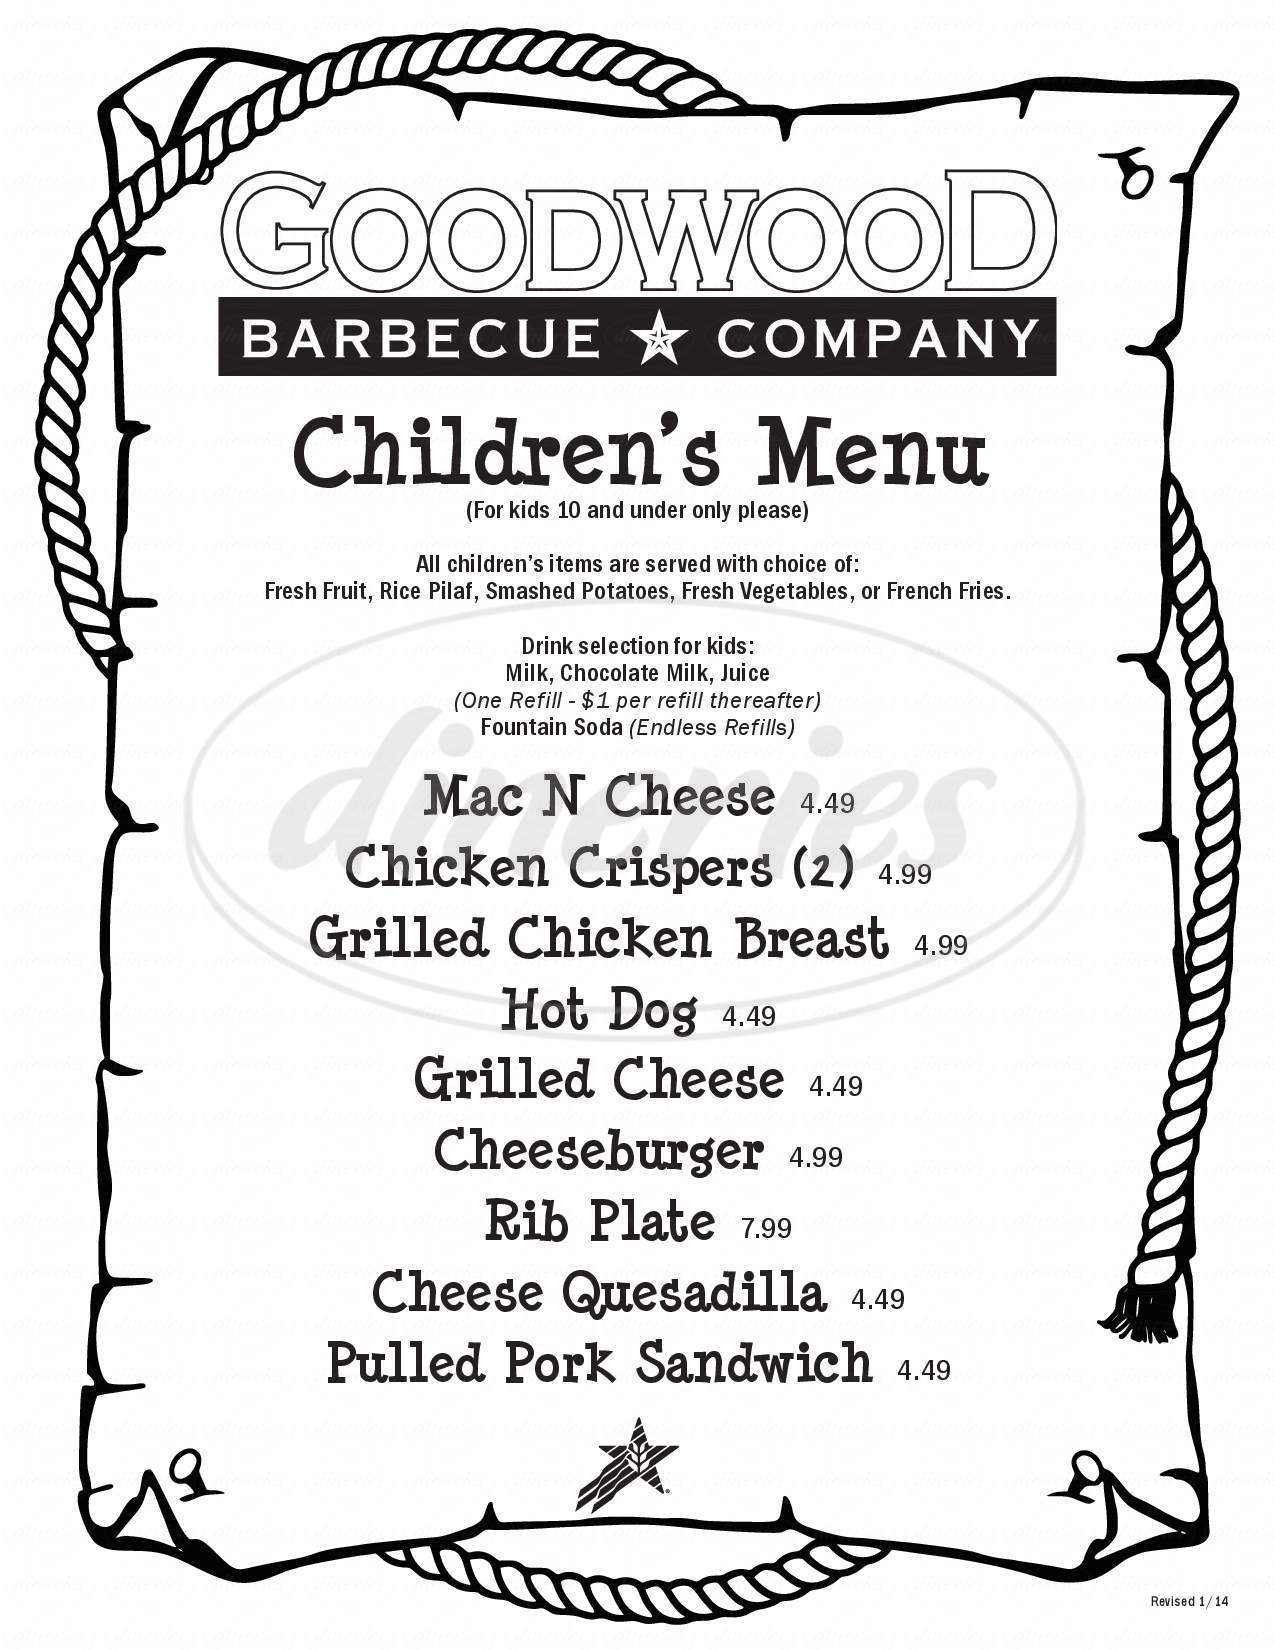 menu for Goodwood Barbecue Restaurant